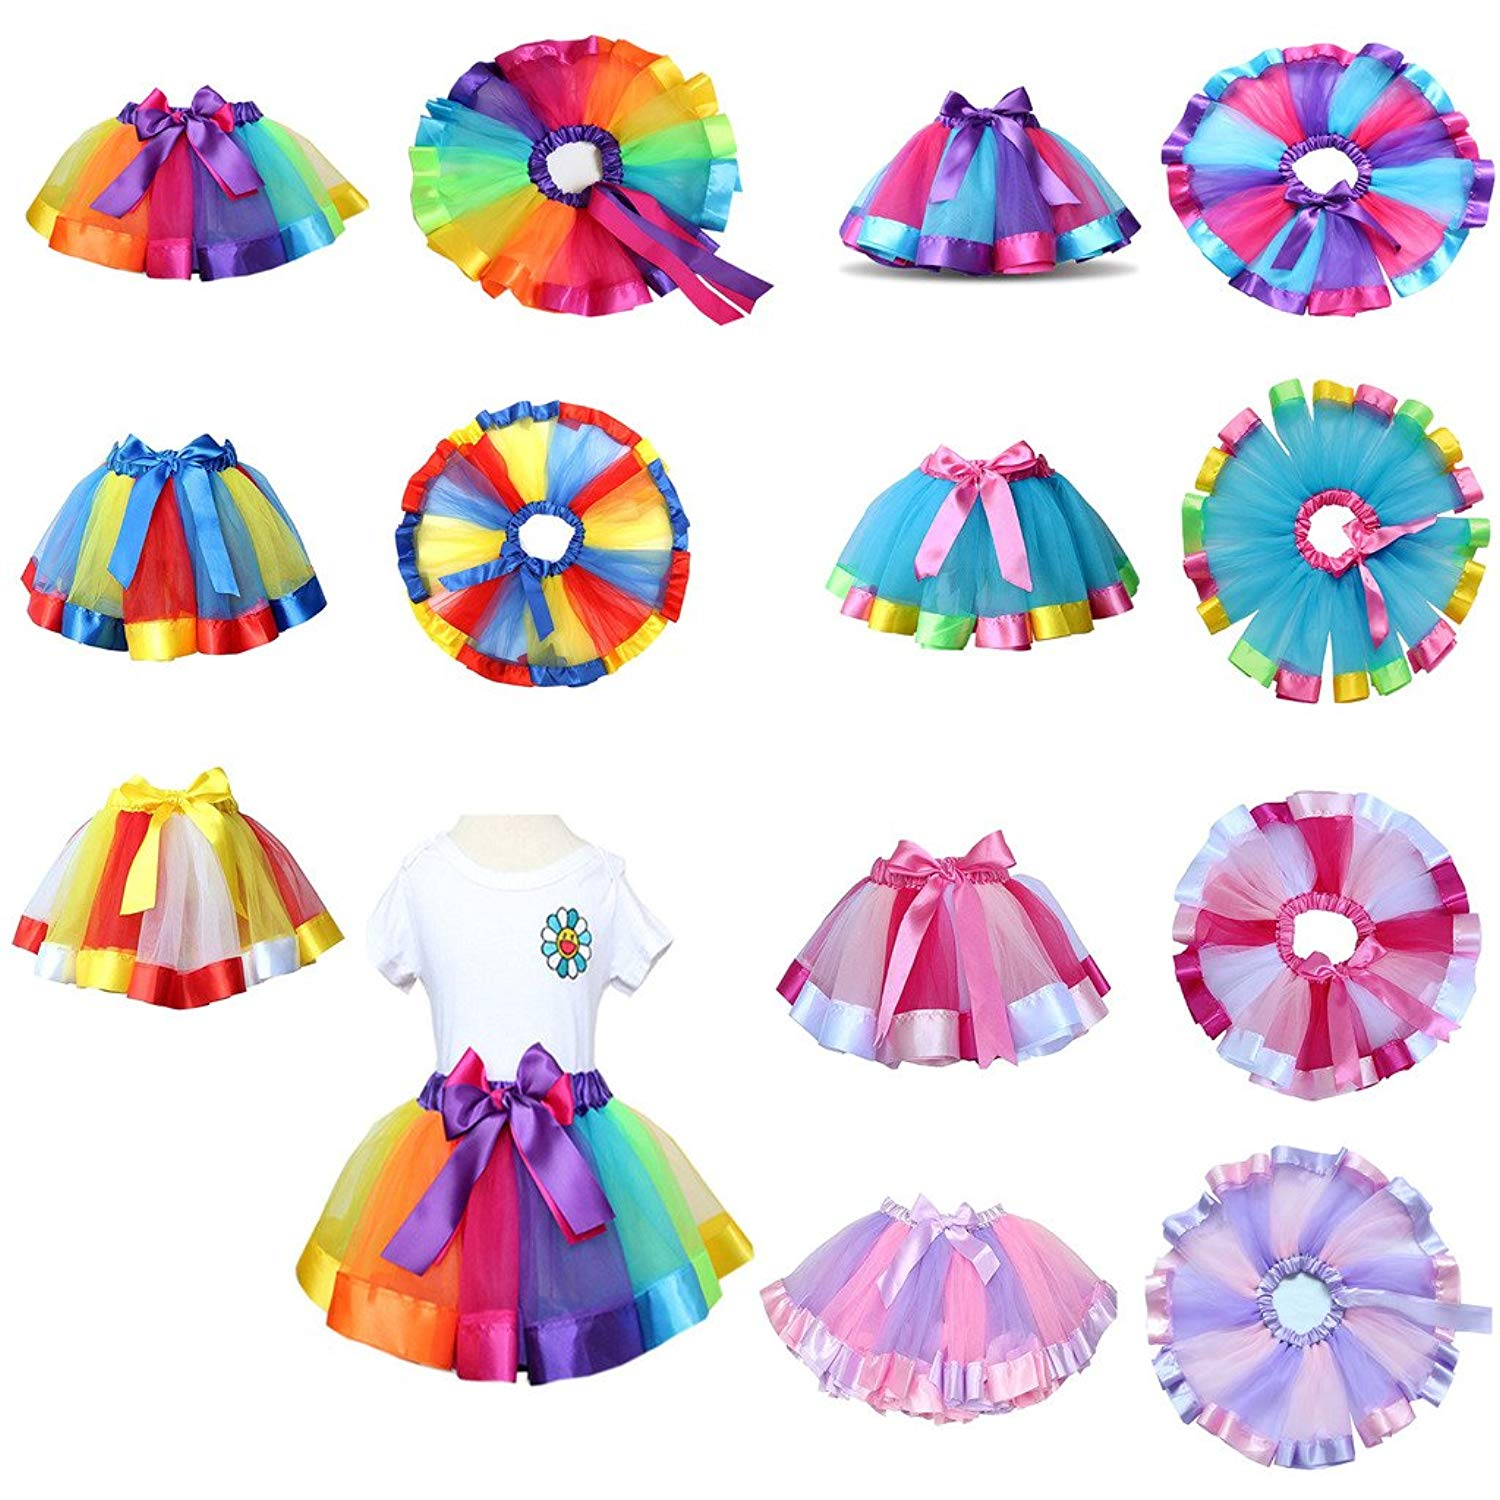 GBSELL Girls Kids Rainbow Pettiskirt Bowknot Skirt Tutu Dress Dancewear